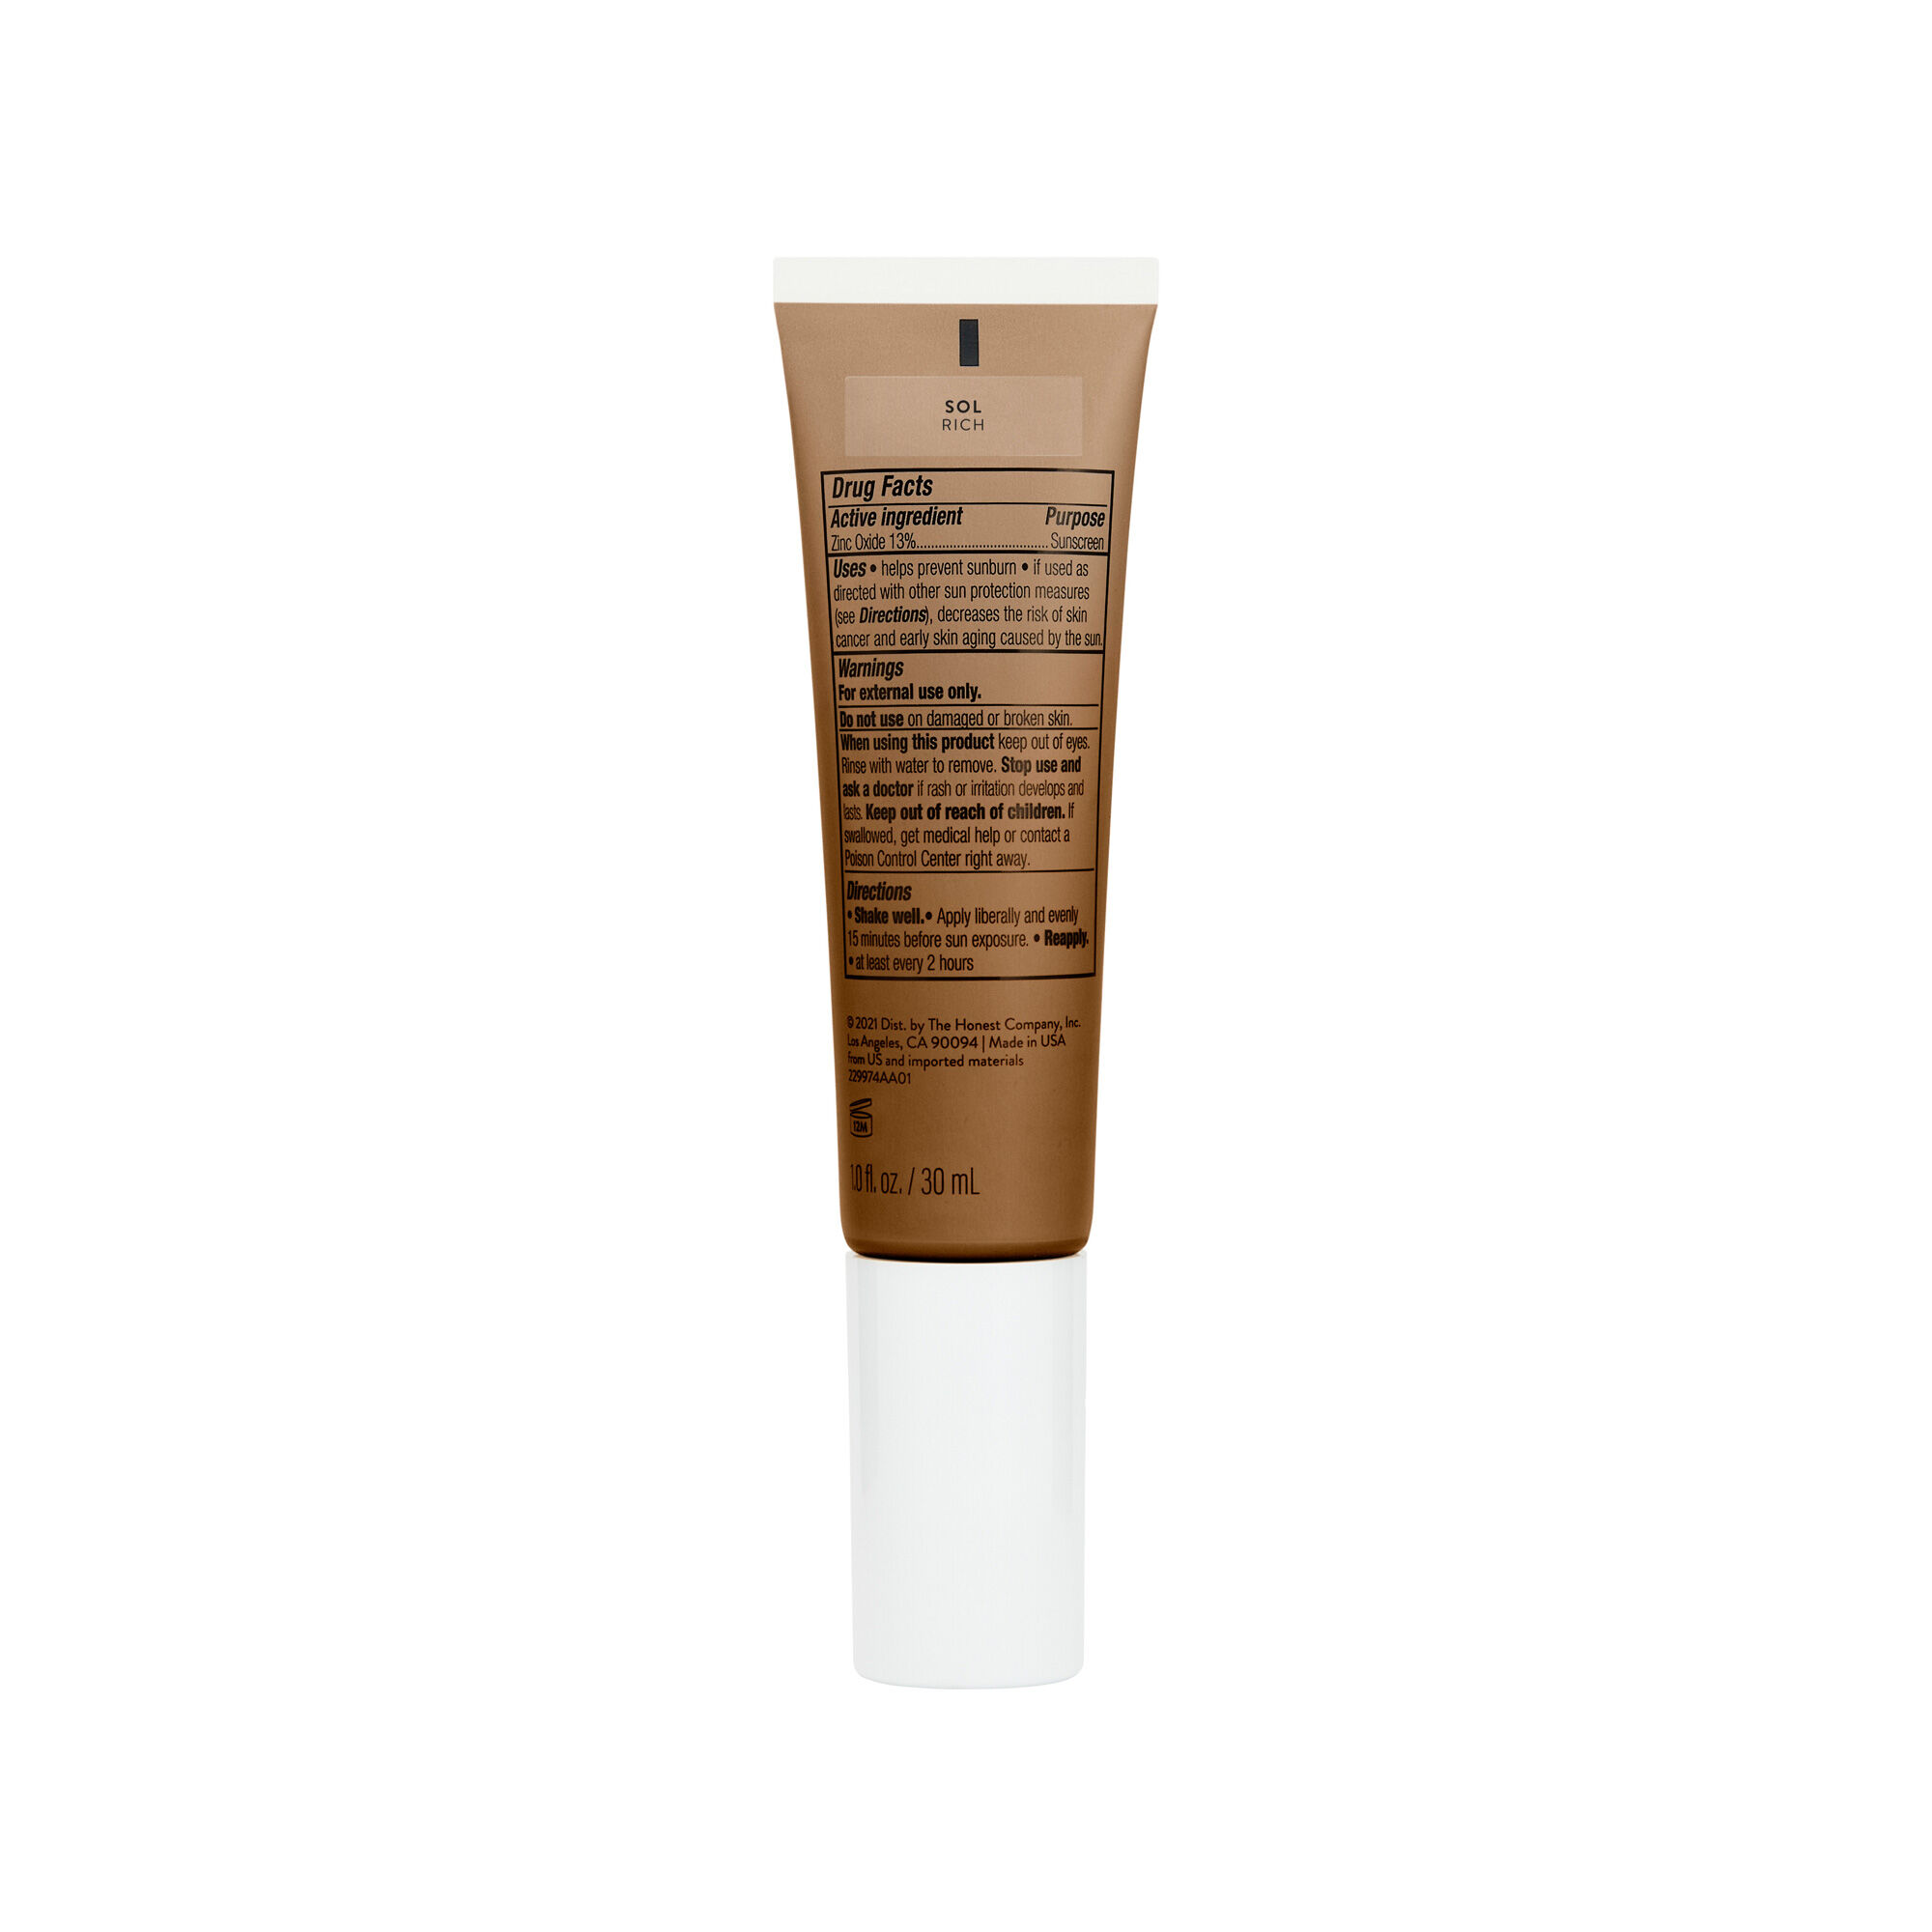 CCC Clean Corrective With Vitamin C Tinted Moisturizer Broad Spectrum SPF 30, Sol